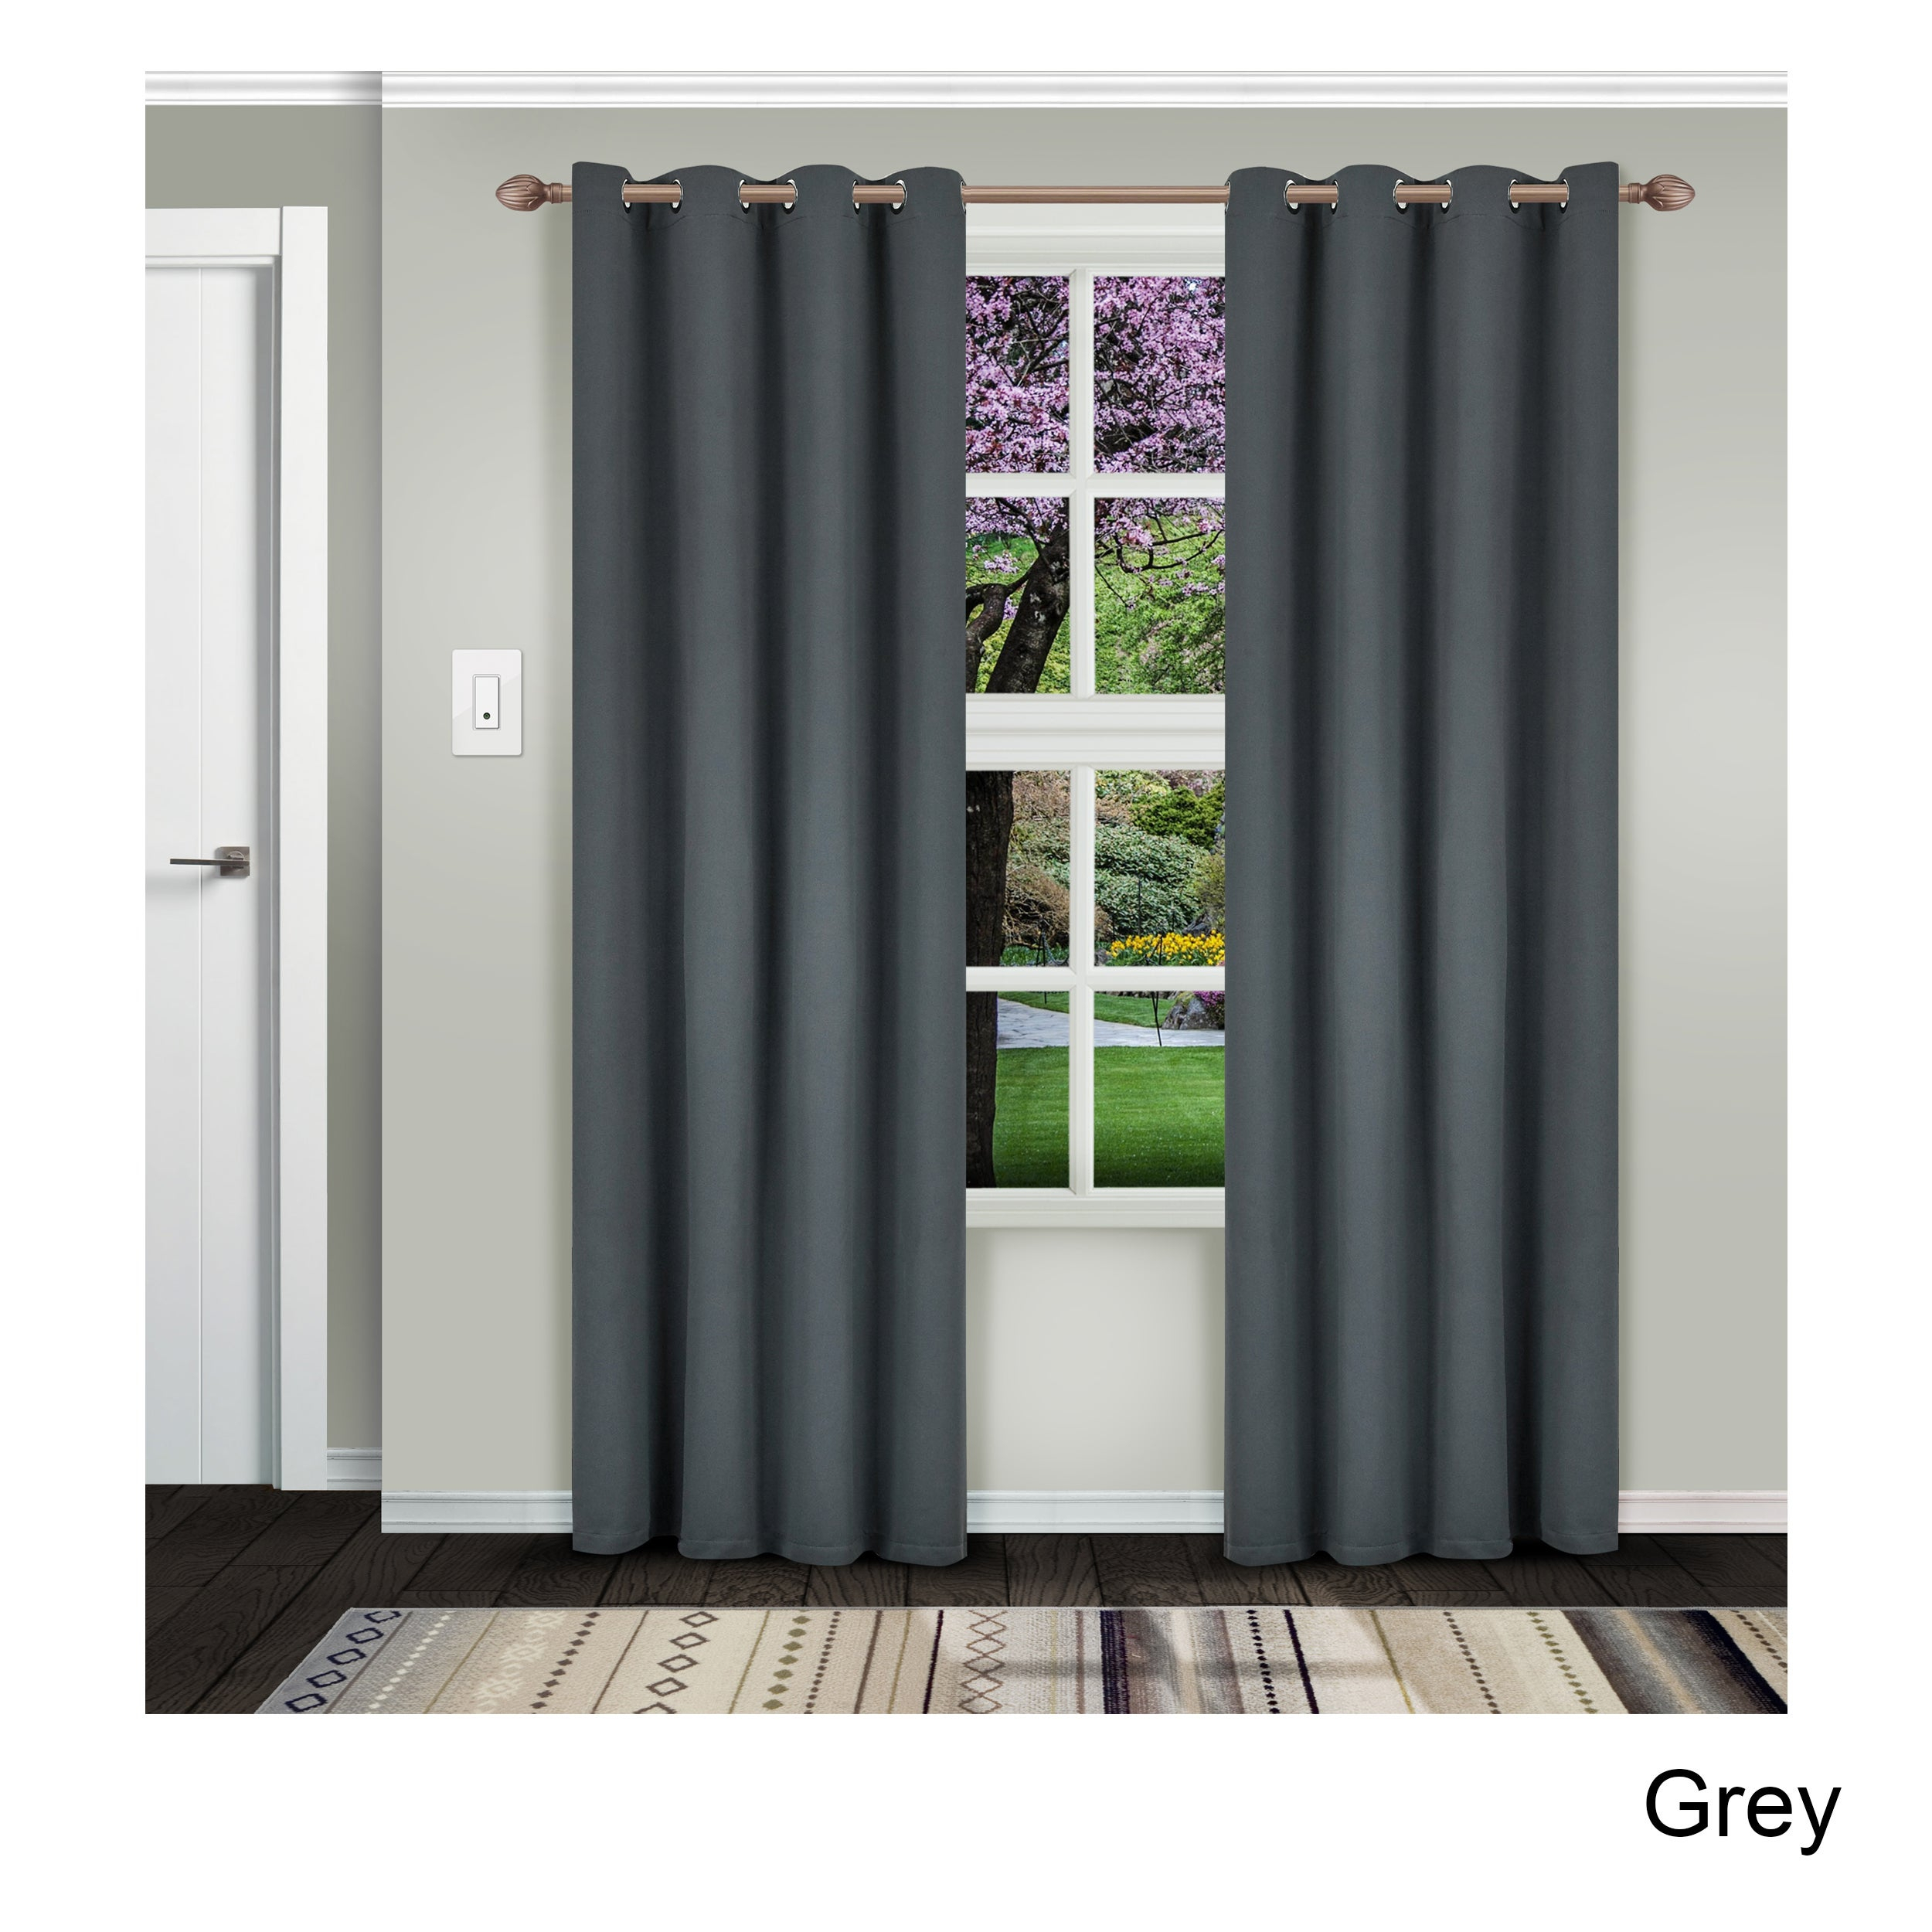 Superior Solid Insulated Thermal Blackout Grommet Curtain Panel Pair For Solid Insulated Thermal Blackout Curtain Panel Pairs (View 3 of 30)